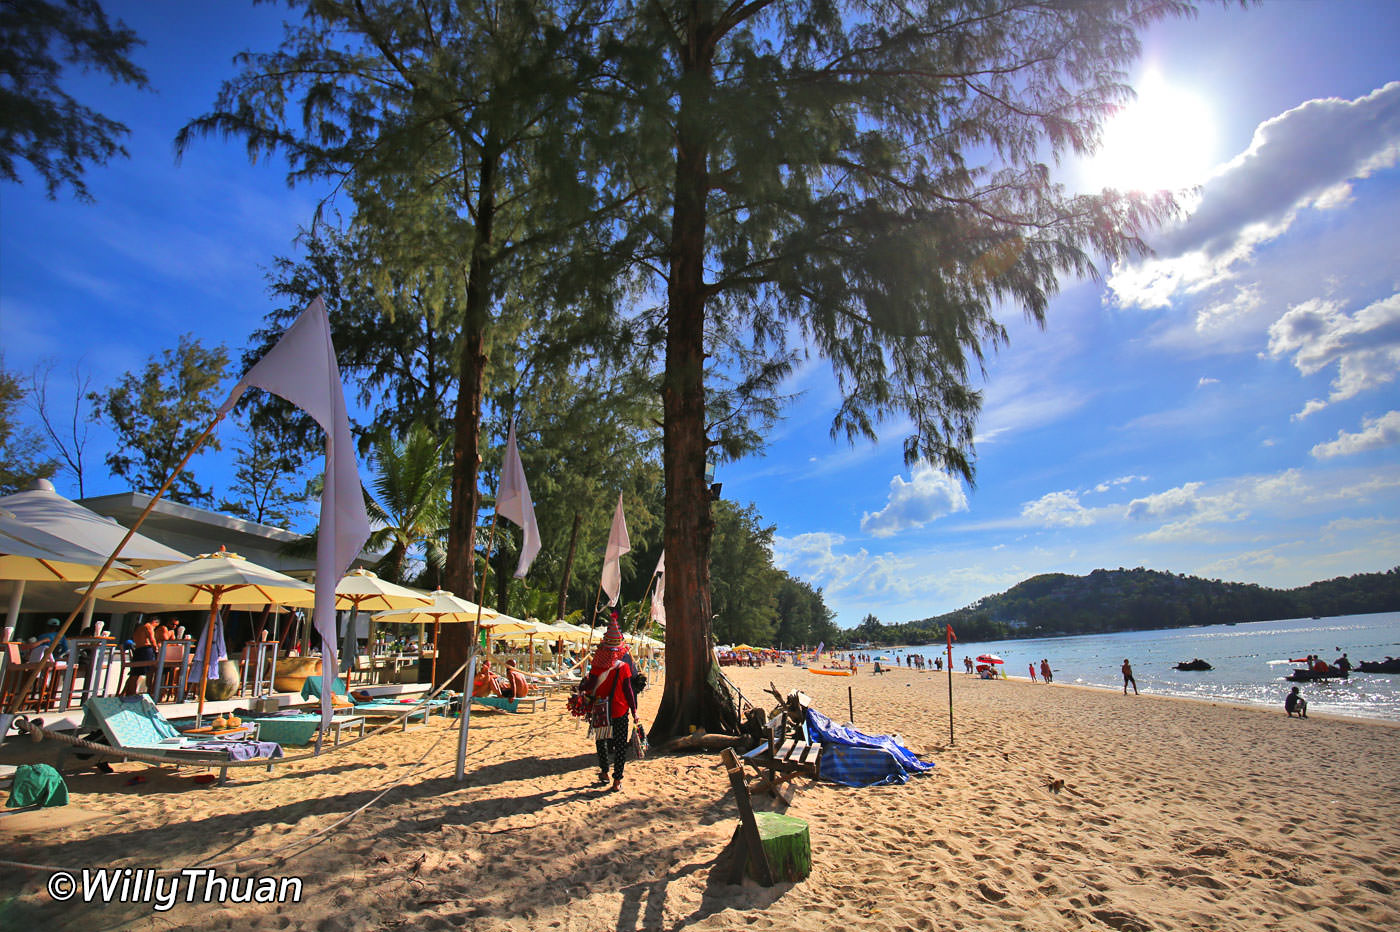 Catch Beach Club on Bangtao Beach, Best Beach Club in Phuket